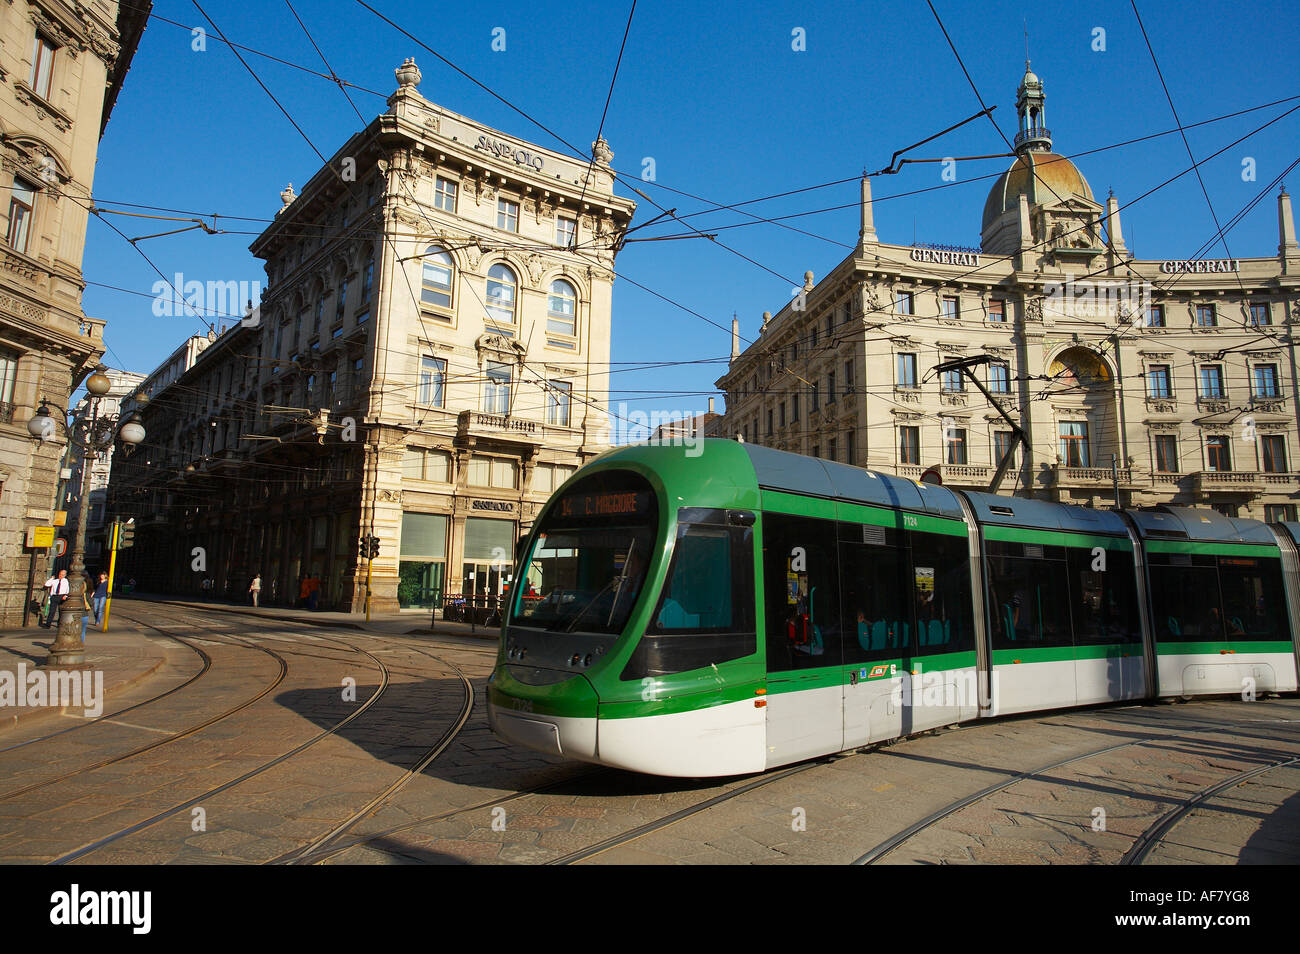 a tram Piazza Cordusio Milan Lombardy Italy NR Stock Photo